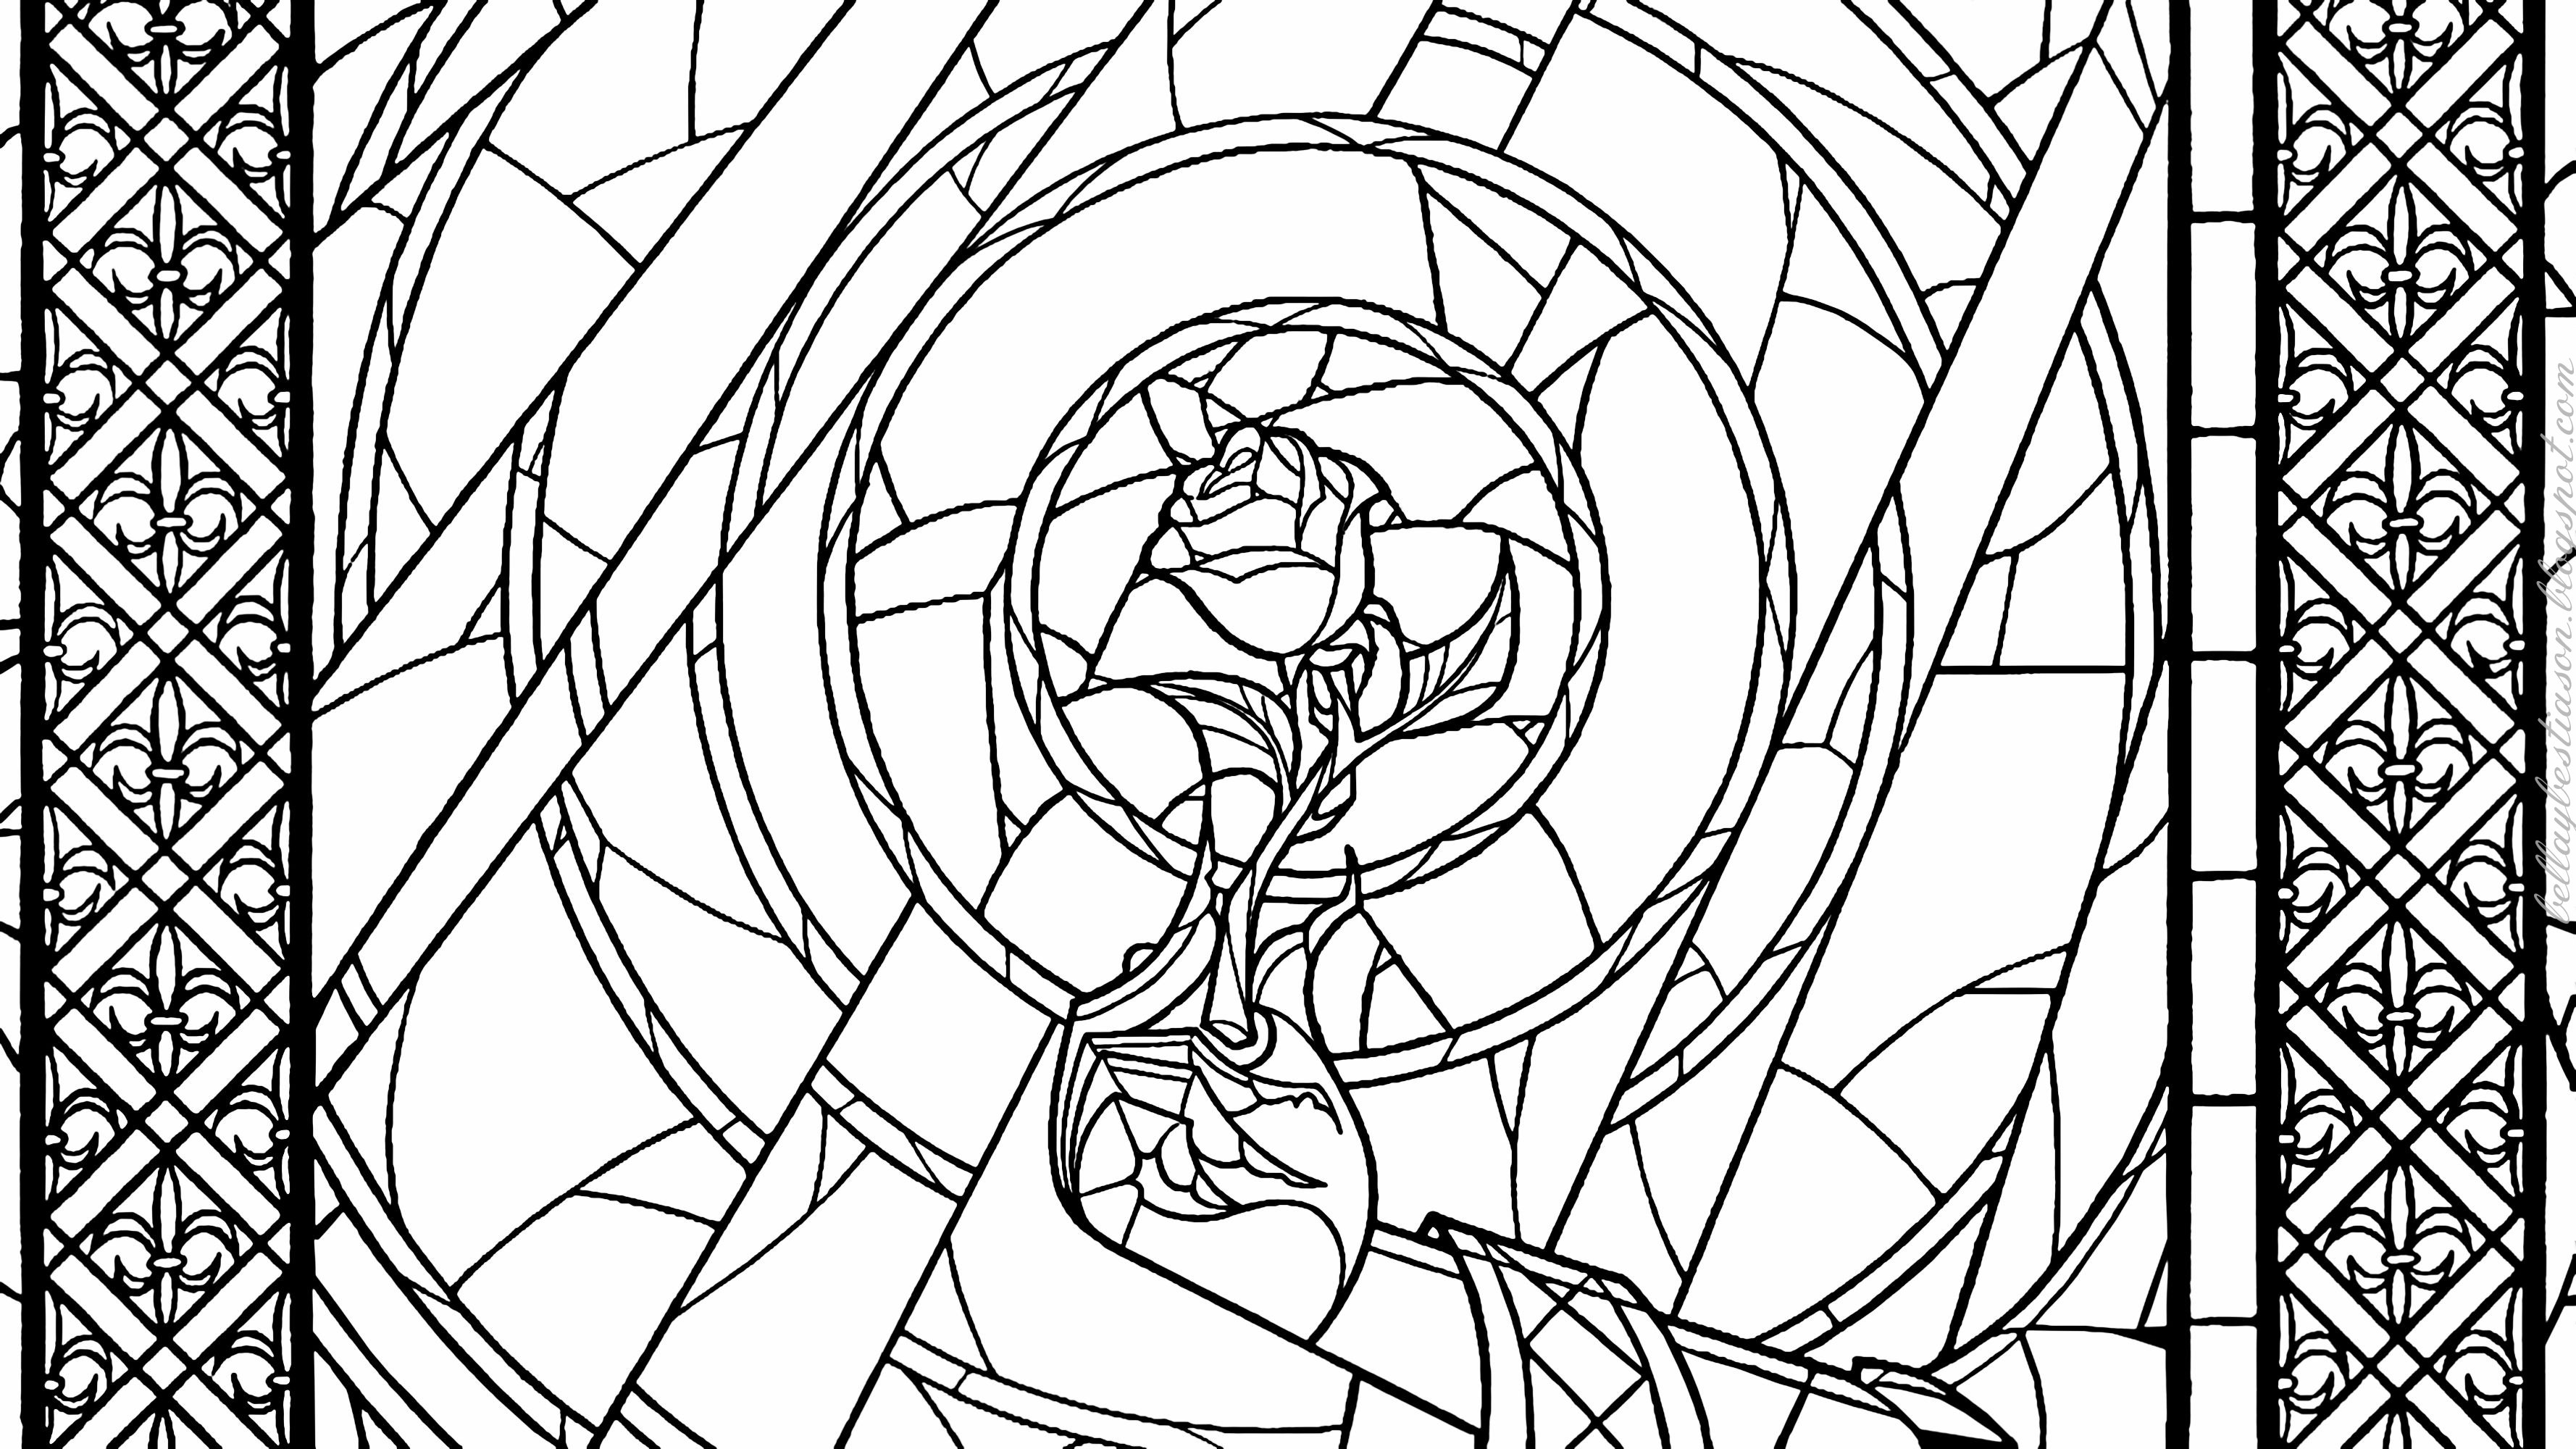 beauty and the beast rose coloring pages top 10 free printable beauty and the beast coloring pages rose and coloring pages the beauty beast